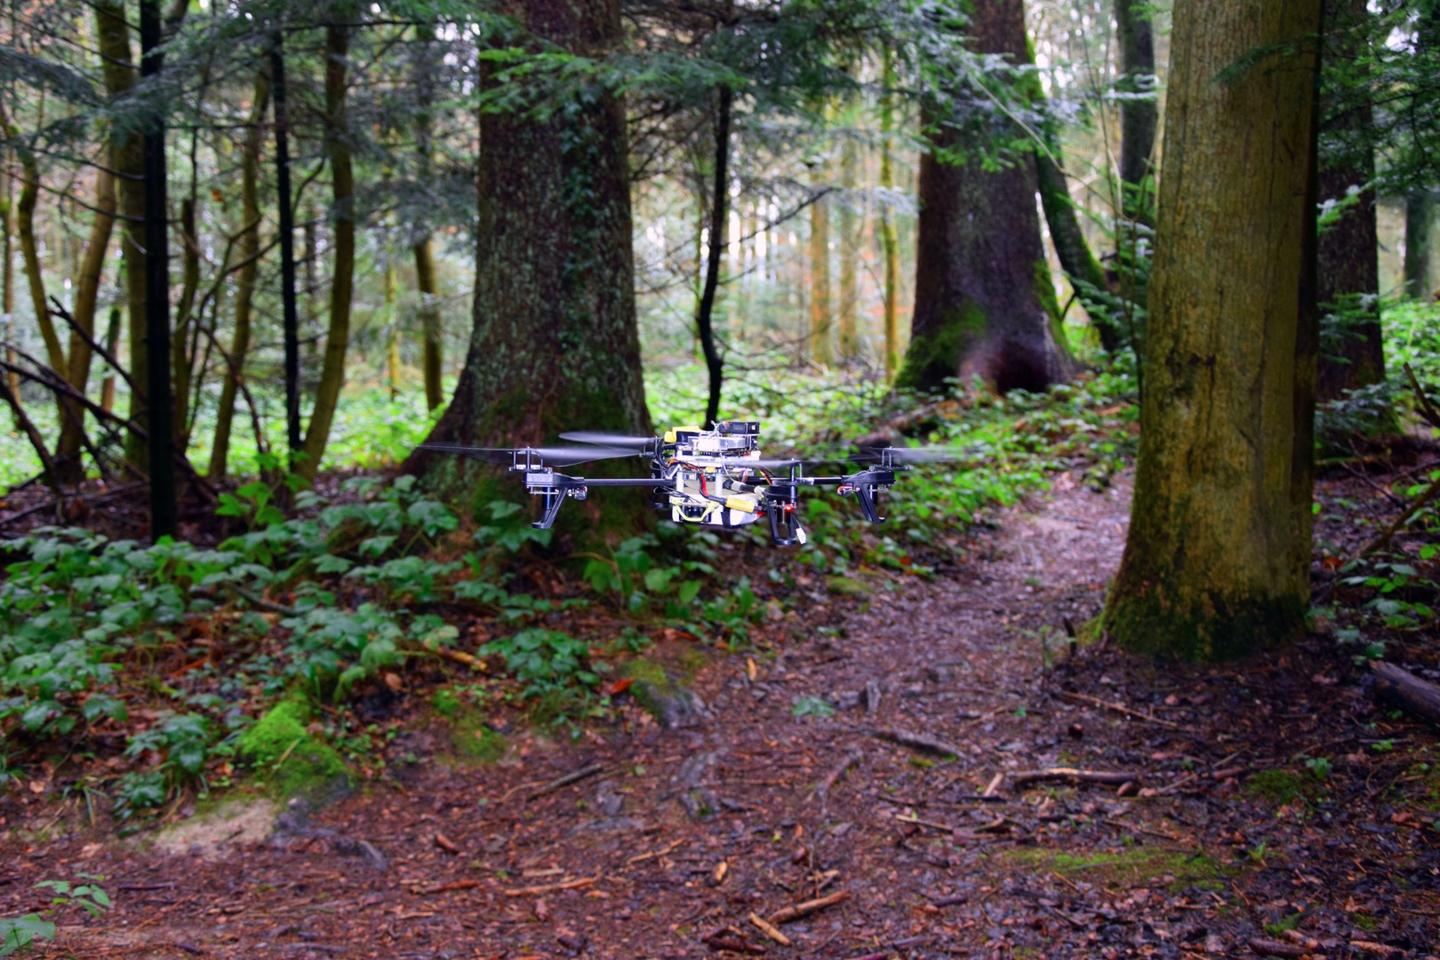 In field tests, a quadcopter was slightly better than humans at finding and following a previously-unseen trail